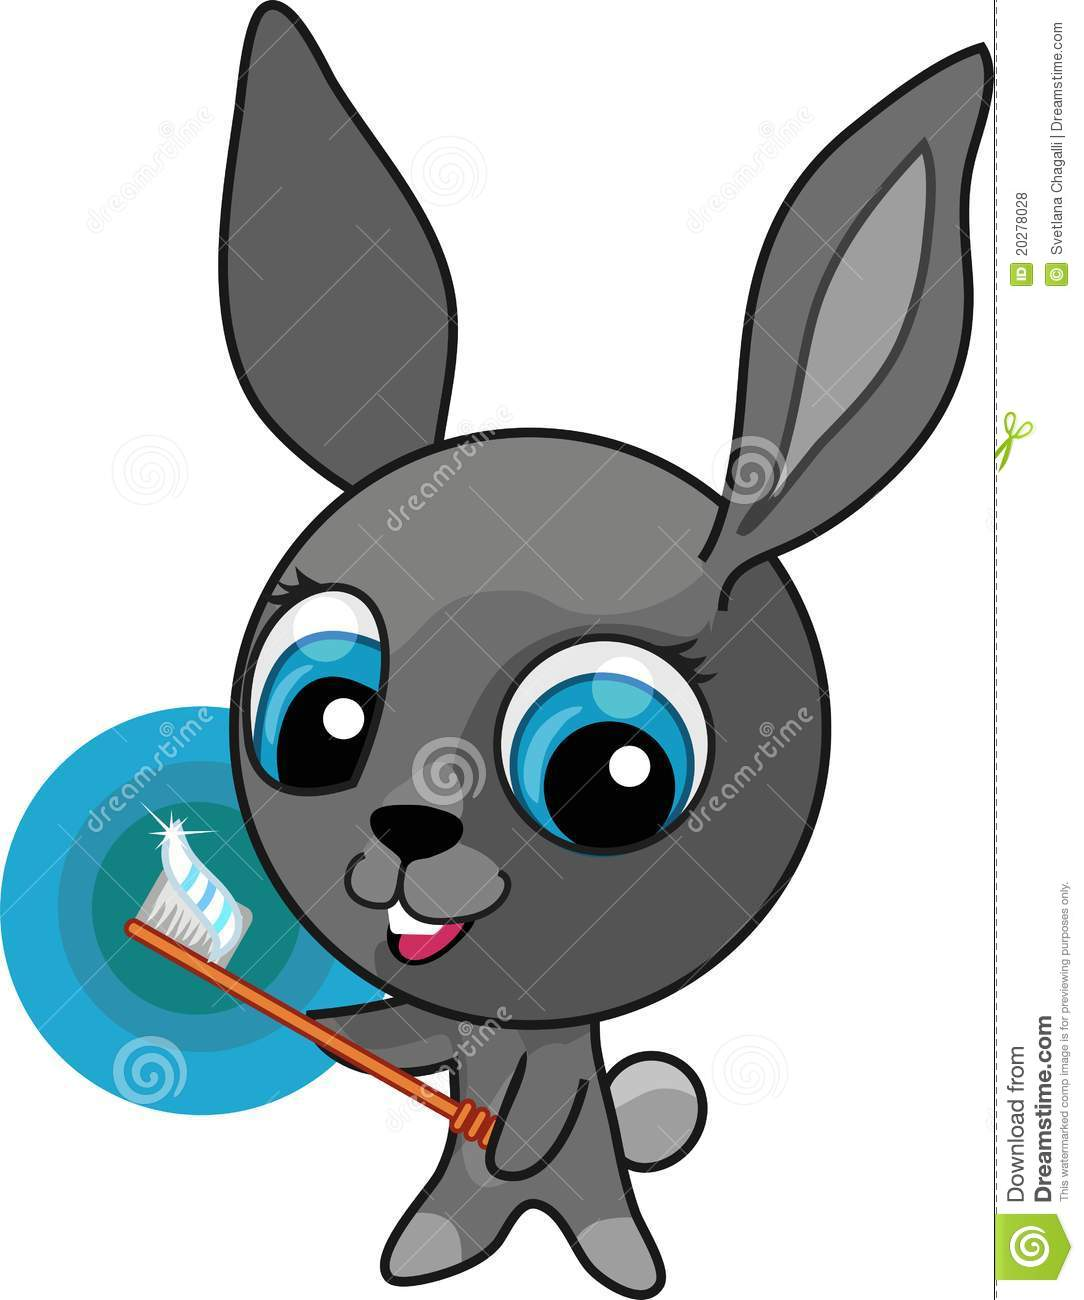 Cute Toothbrush Drawing Funny Cartoon Bunny Wi...